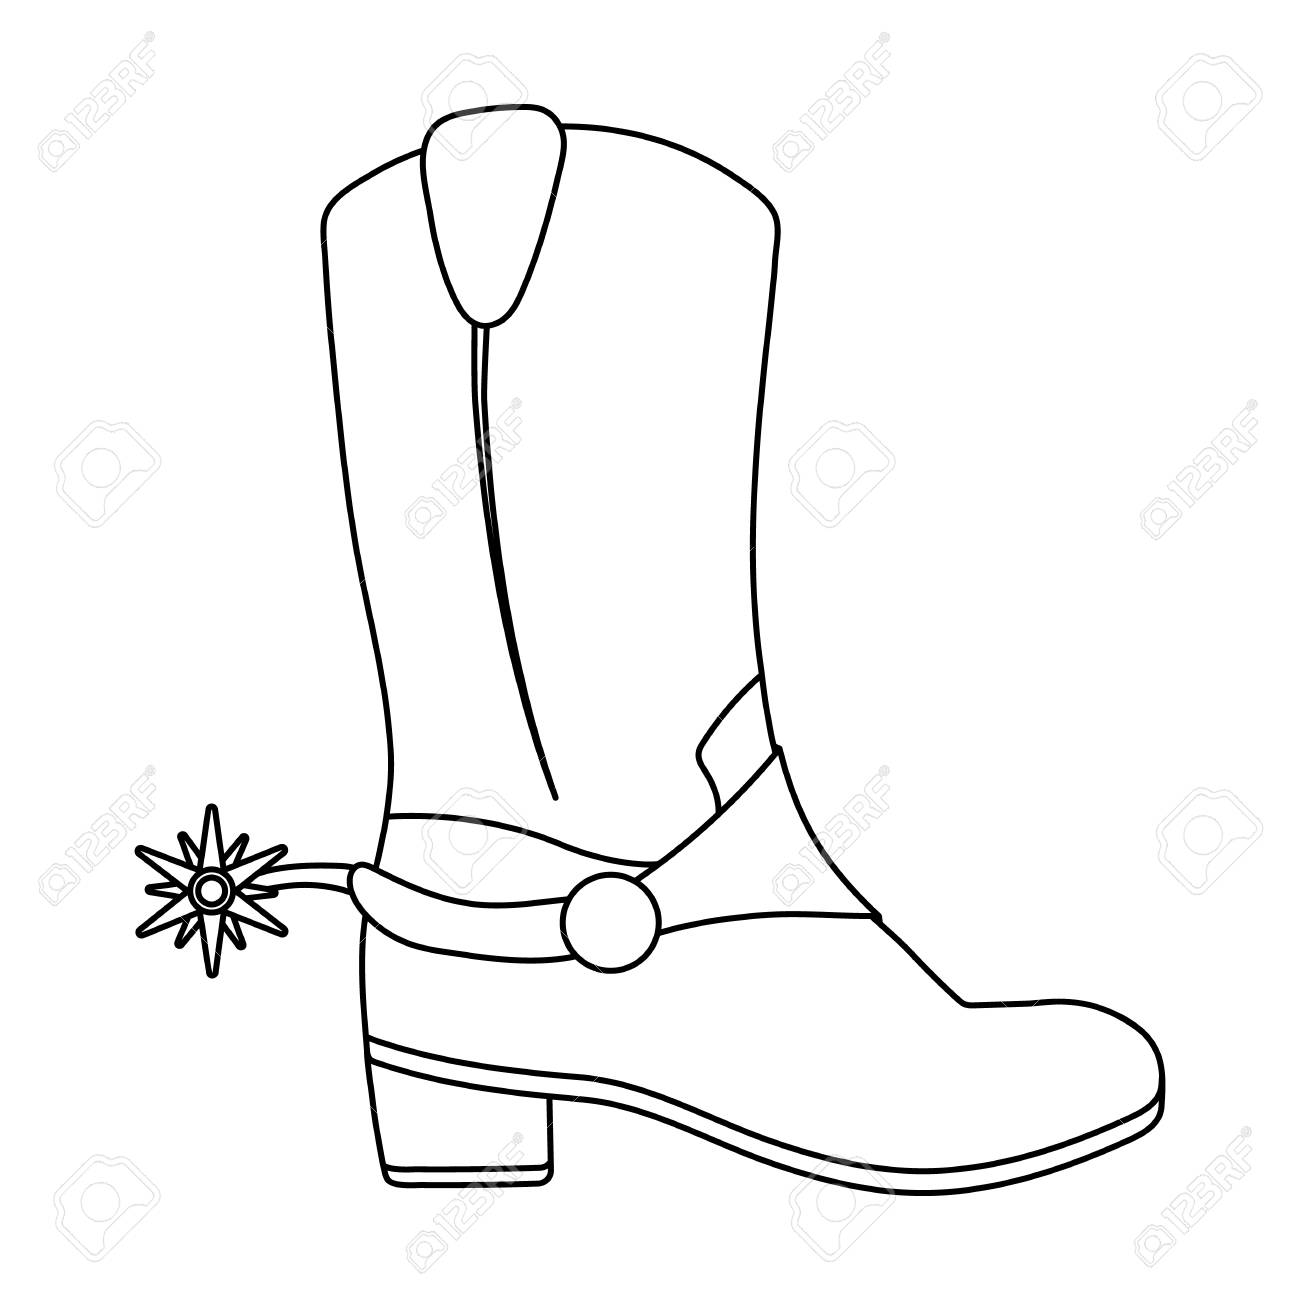 hight resolution of 1300x1300 cowboy boot outline clip art cowboy boot line drawing cowboy boot line drawing